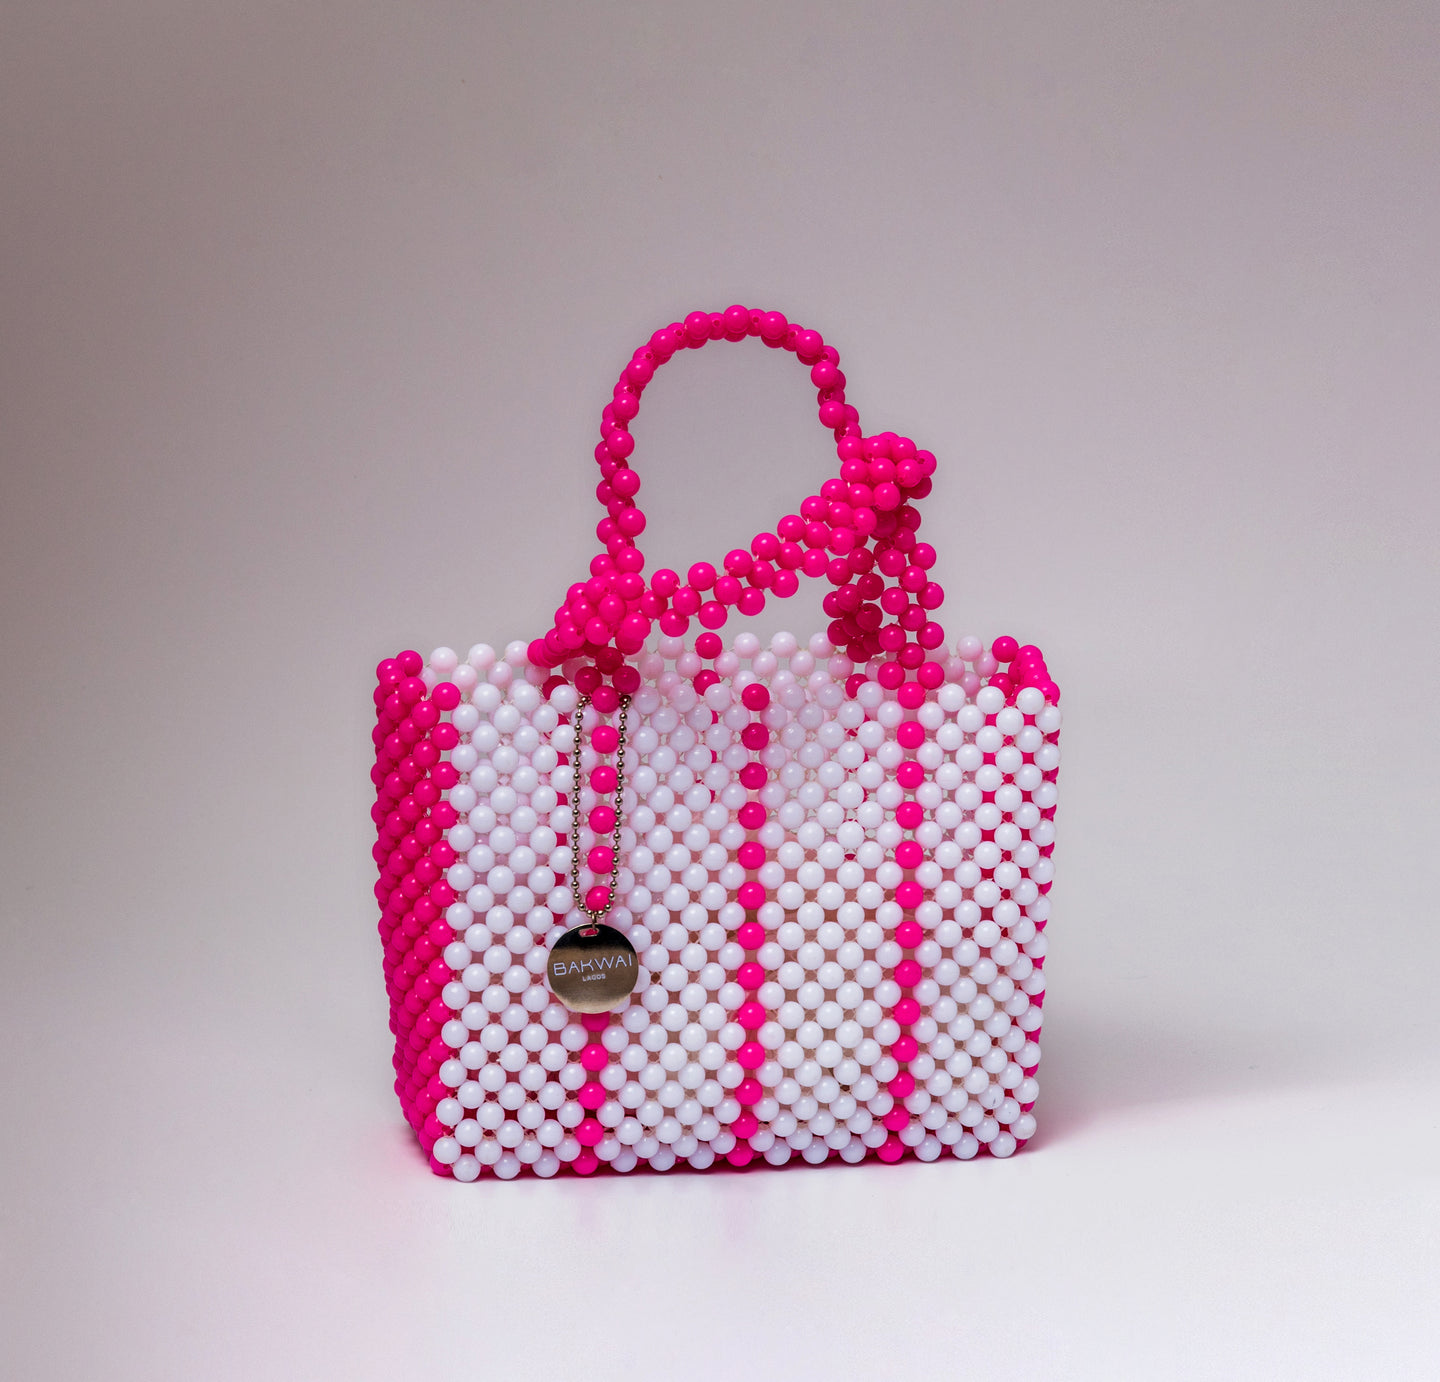 Sam Bag - White & Pink